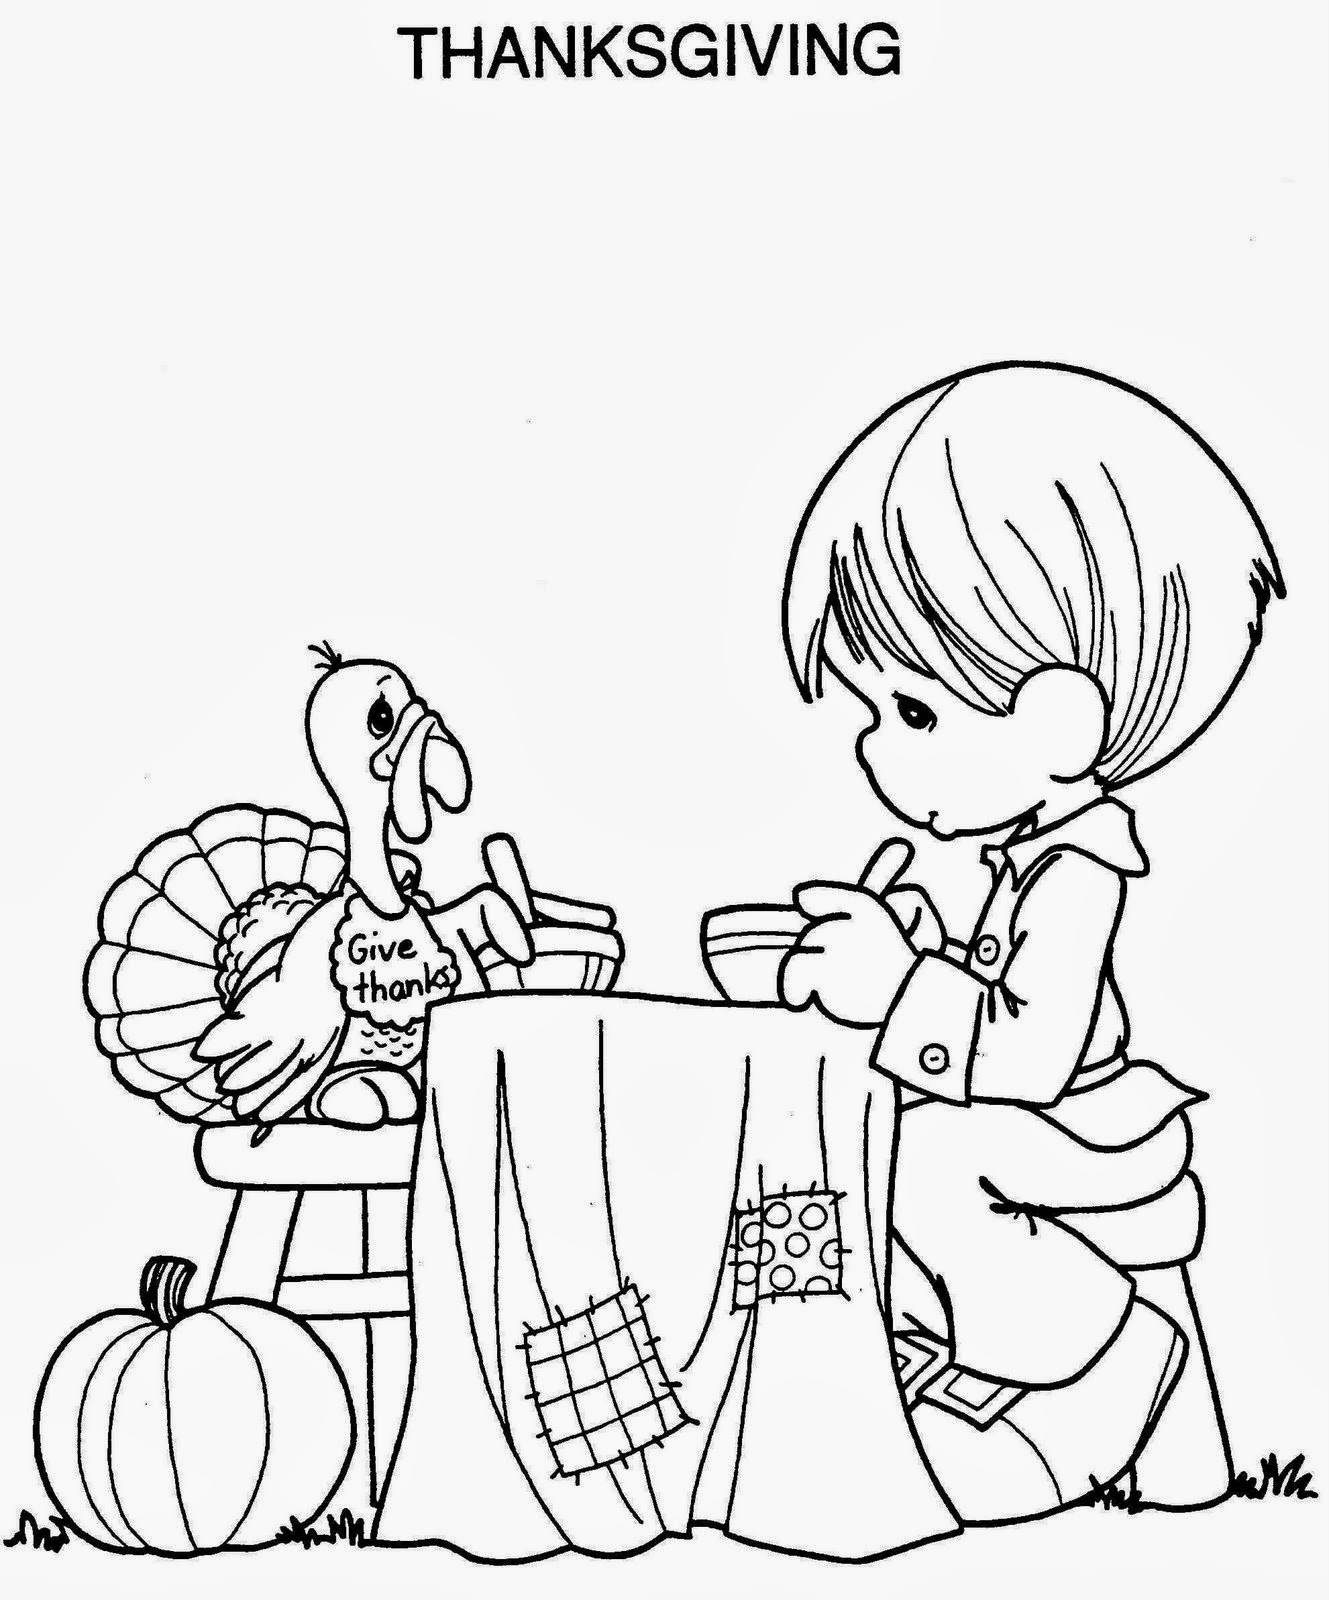 Thanksgiving day for coloring part 1 for Thanksgiving coloring page free